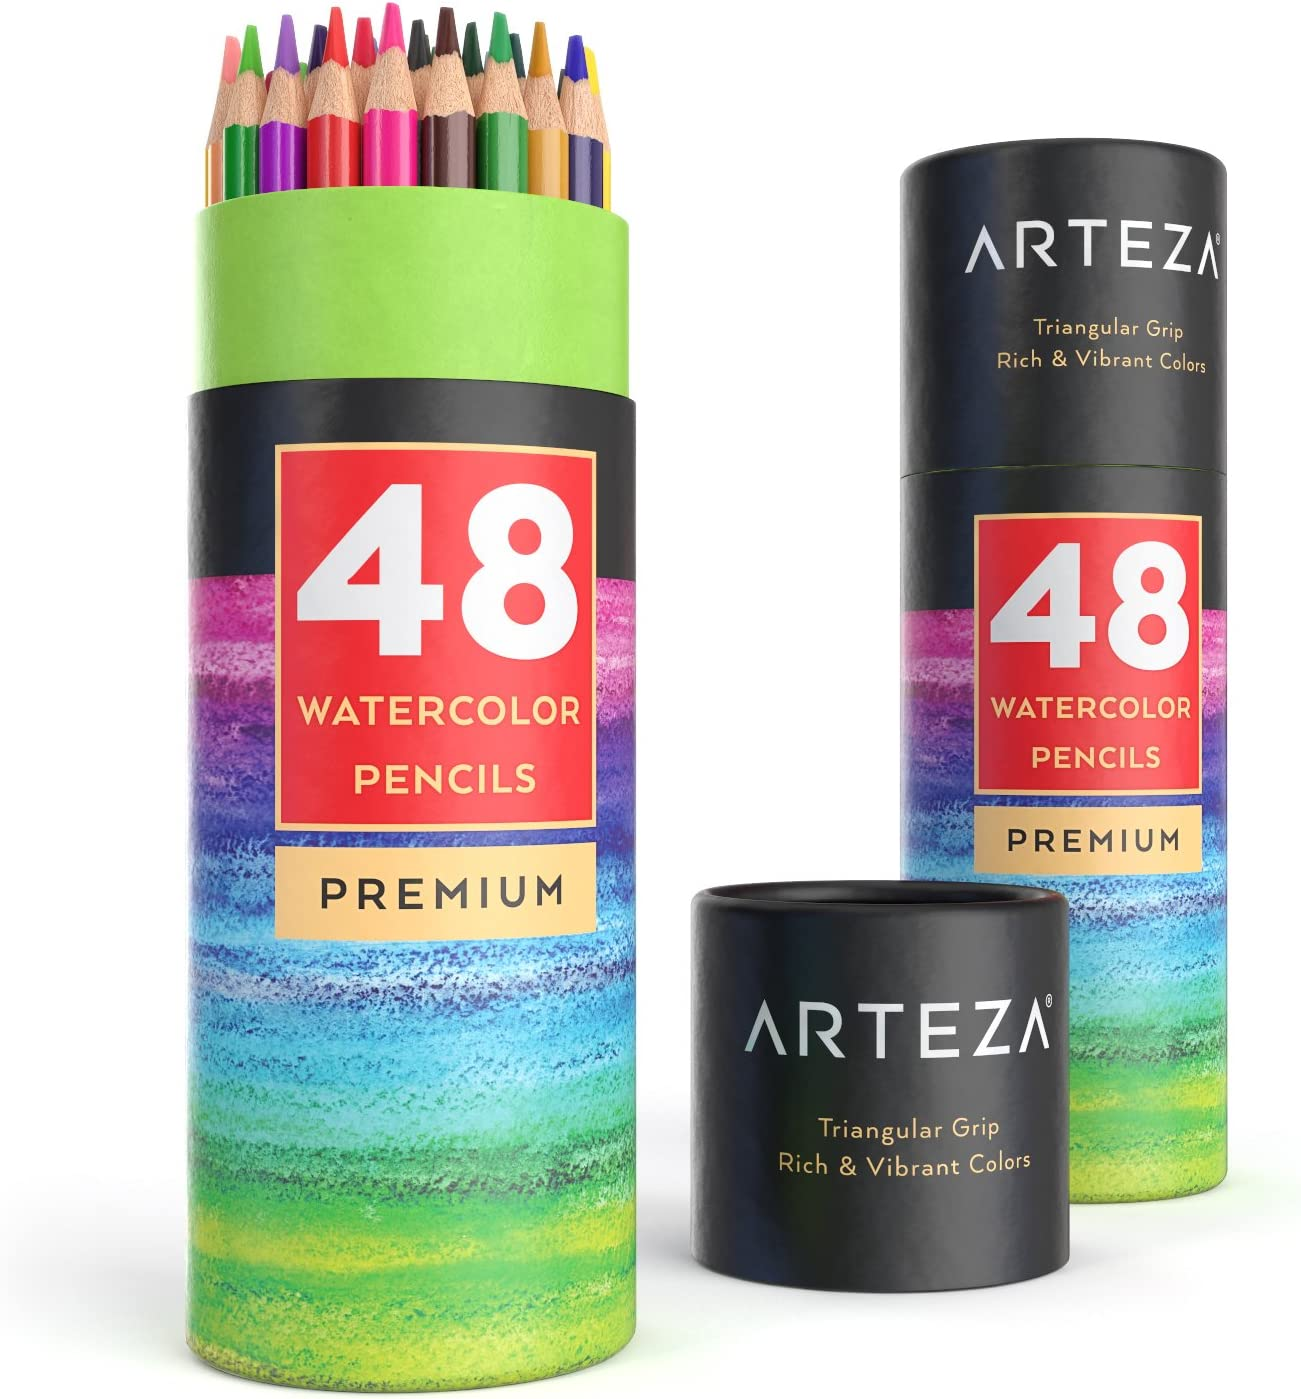 Arteza Watercolor Pencils Set of 48, Presharpened, Triangular-Shaped Colored Pencils for Adults and Kids